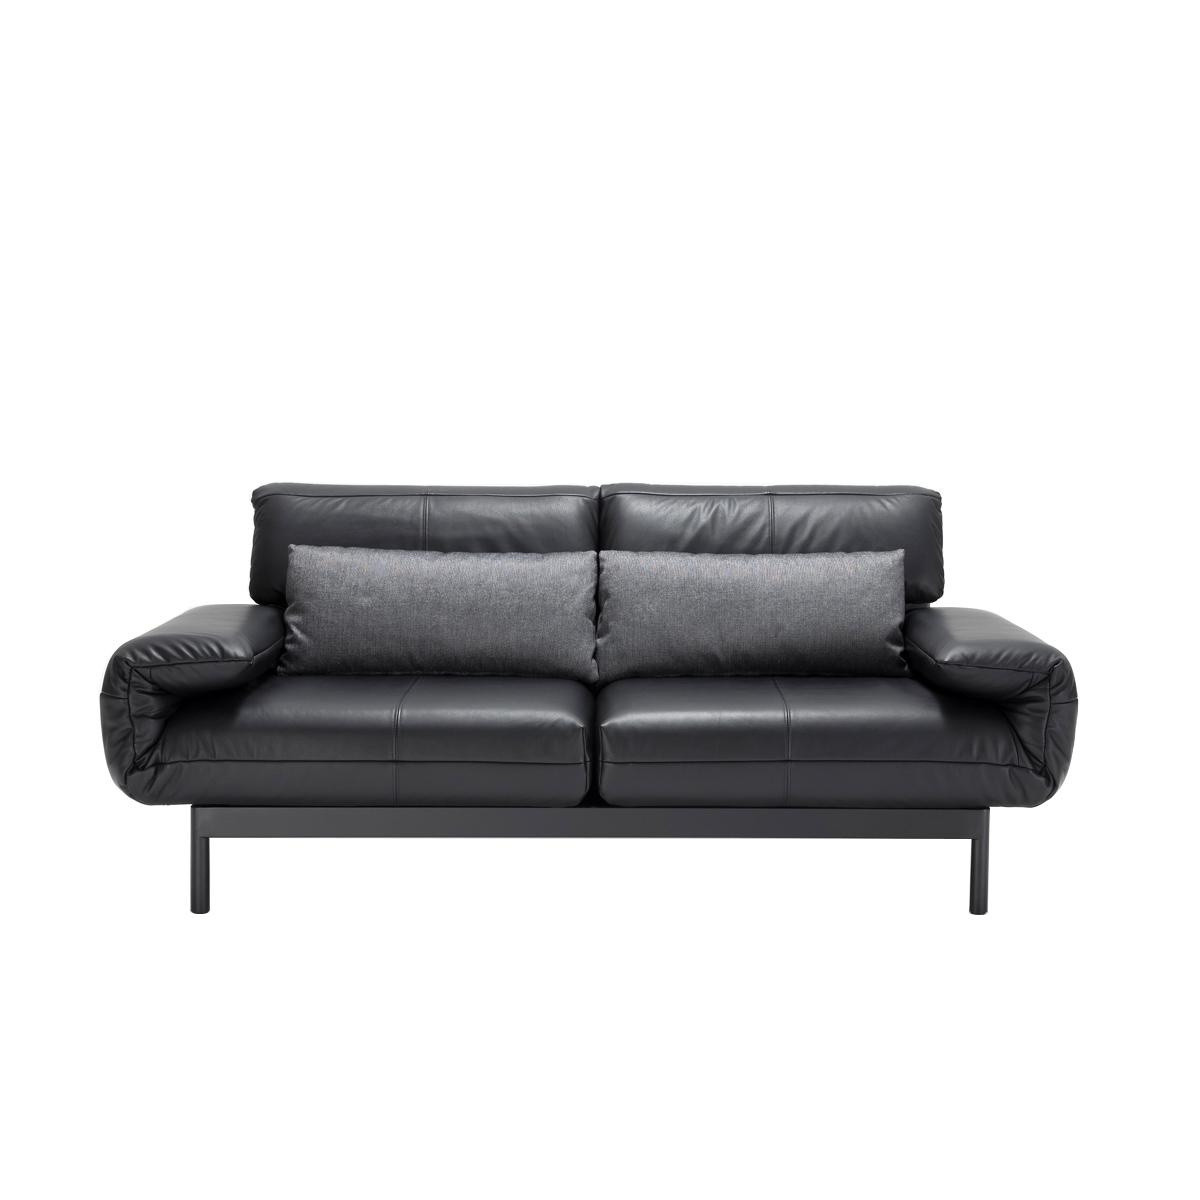 sofa 3 sitzer leder excellent relaxsofa sitzer leder microfaser incliner arena ii weigrau with. Black Bedroom Furniture Sets. Home Design Ideas